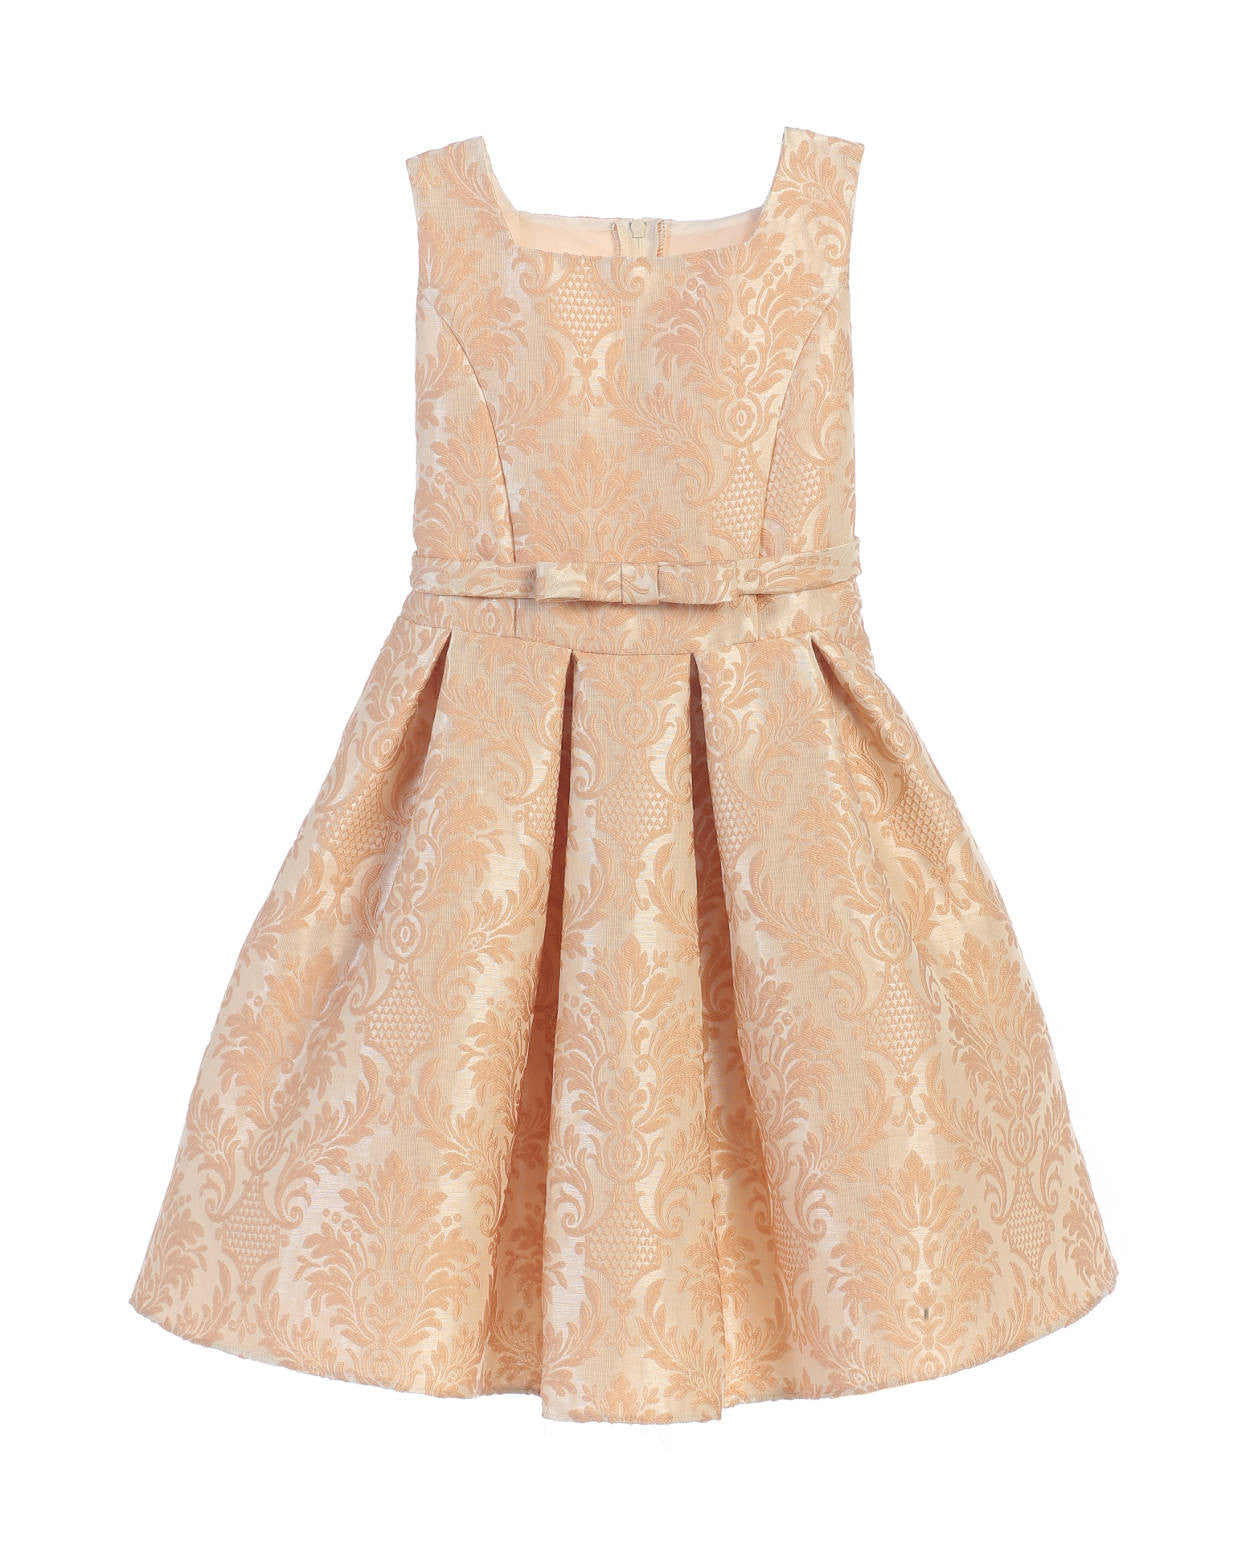 Sweet Kids Vintage Baroque Pleated Jacquard Dress - Champagne, SK701